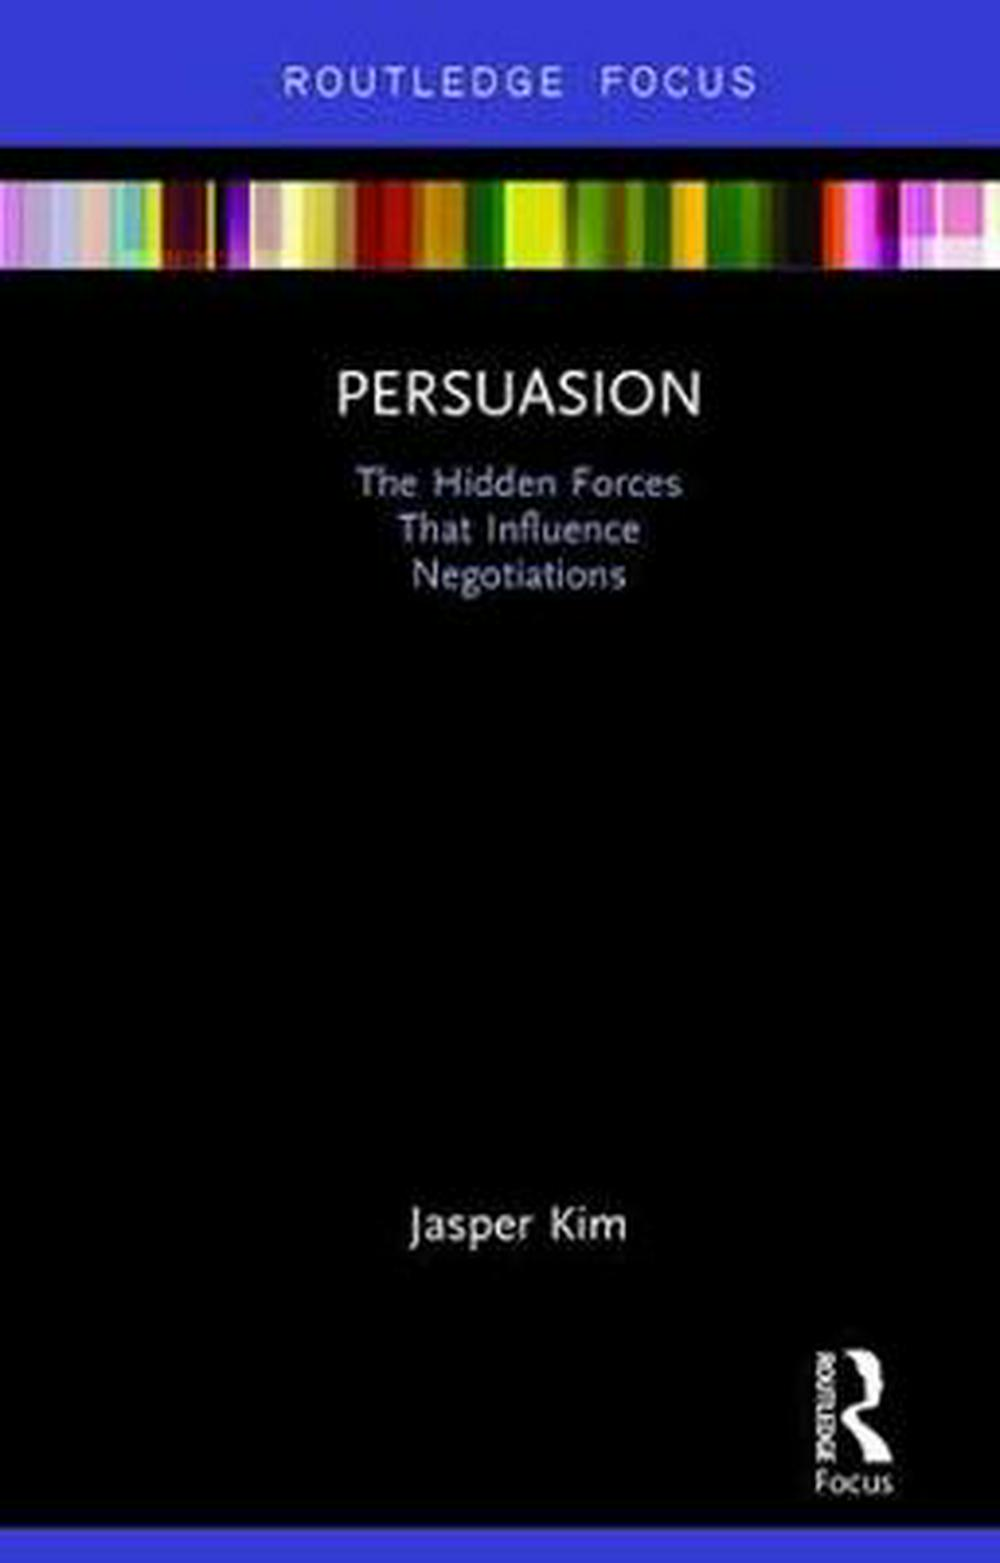 Persuasion: The Hidden Forces That Influence Negotiations (Routledge Focus on Business and Management) by Jasper Kim, ISBN: 9780815361954